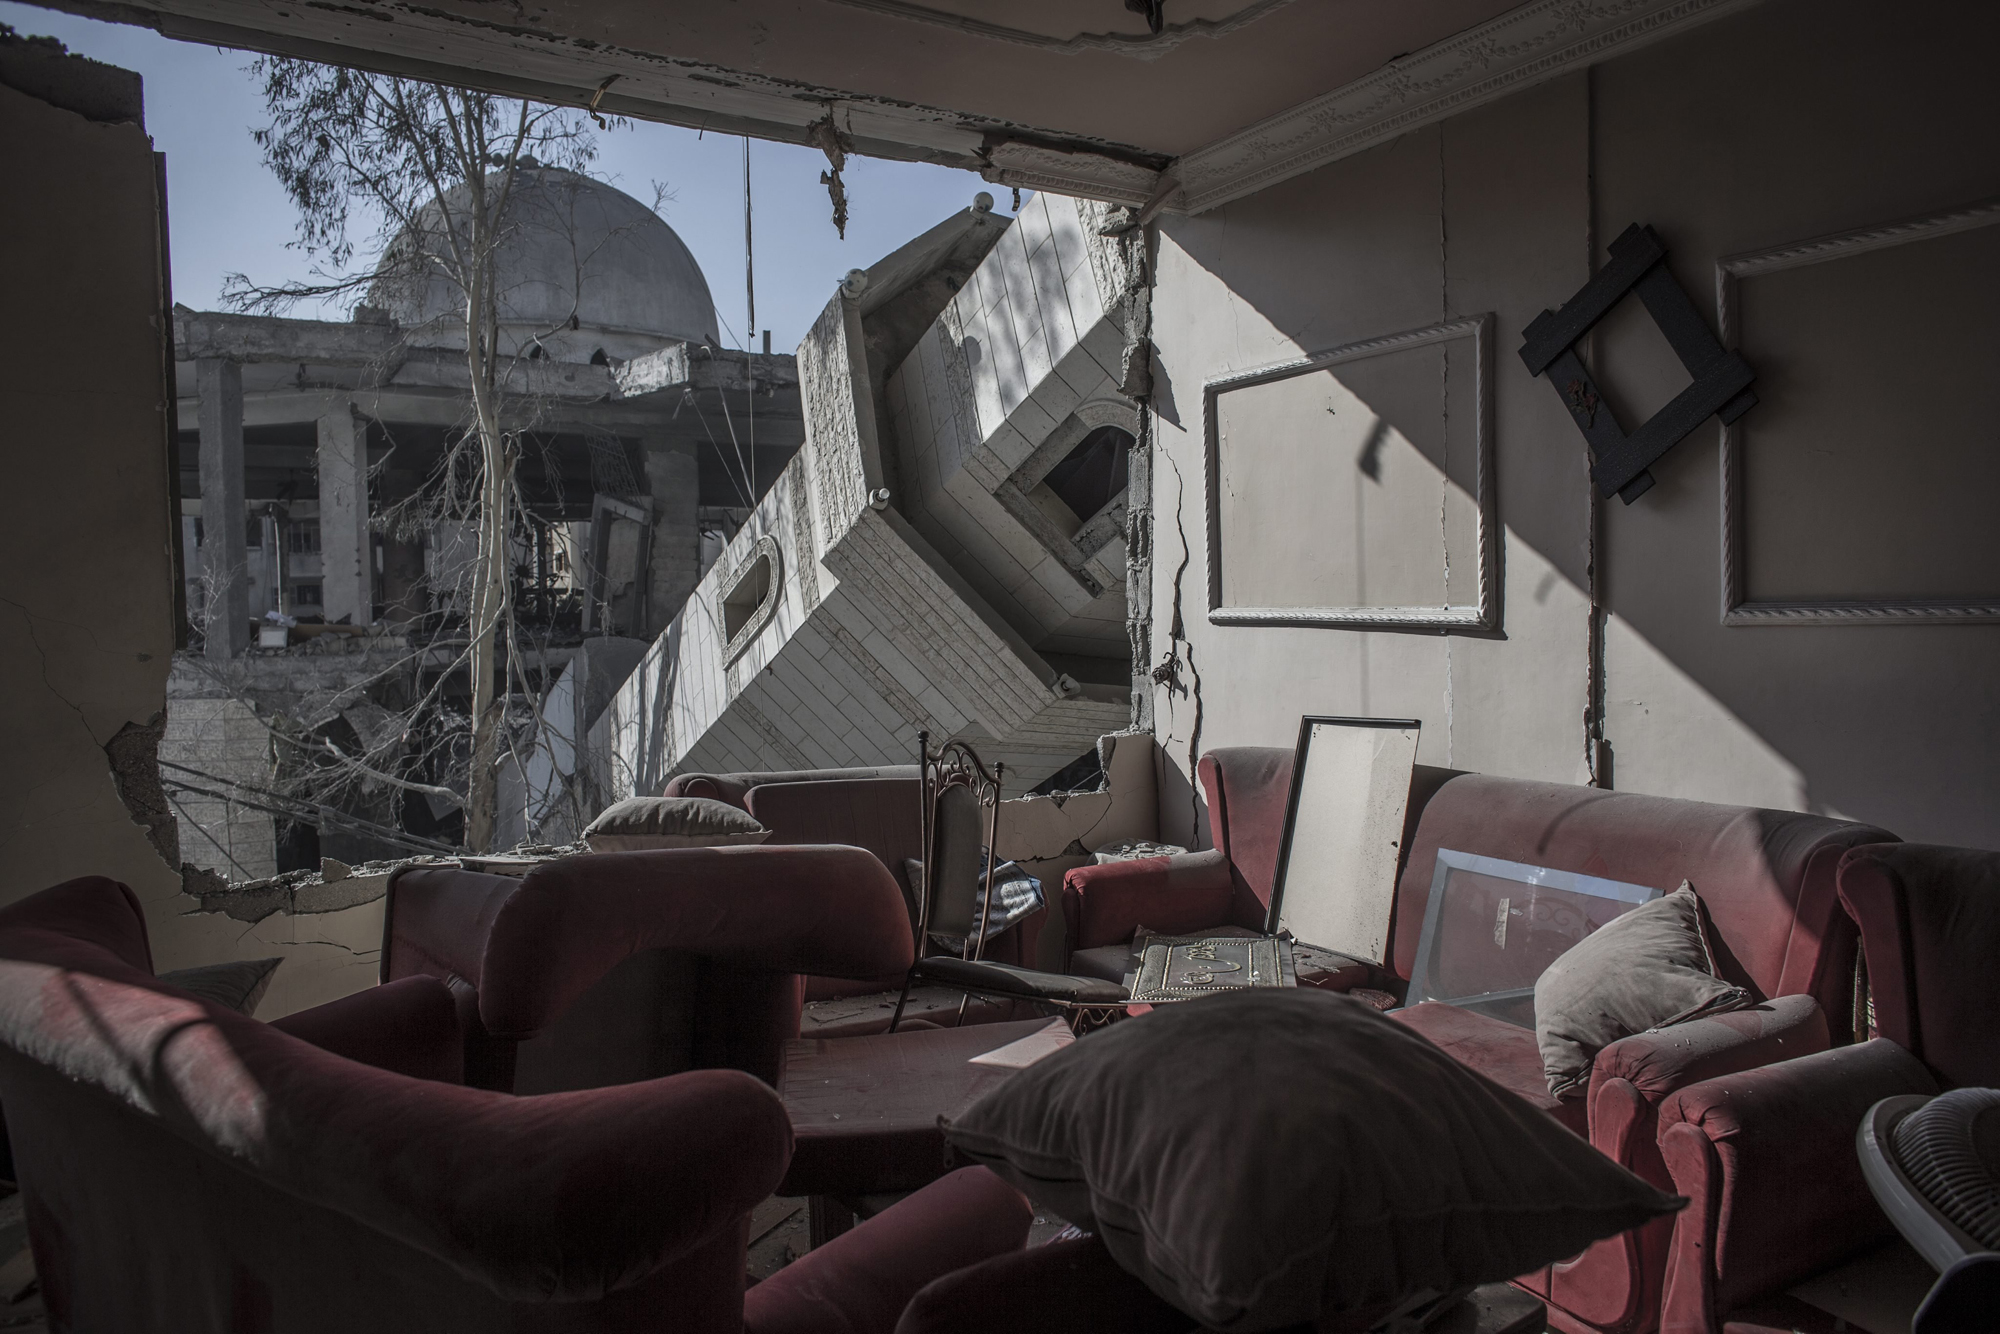 The collapsed minaret of mosque seen from the destroyed living room of a Palestinian family in a building across the street in Gaza City, Gaza Strip, July 30, 2014.